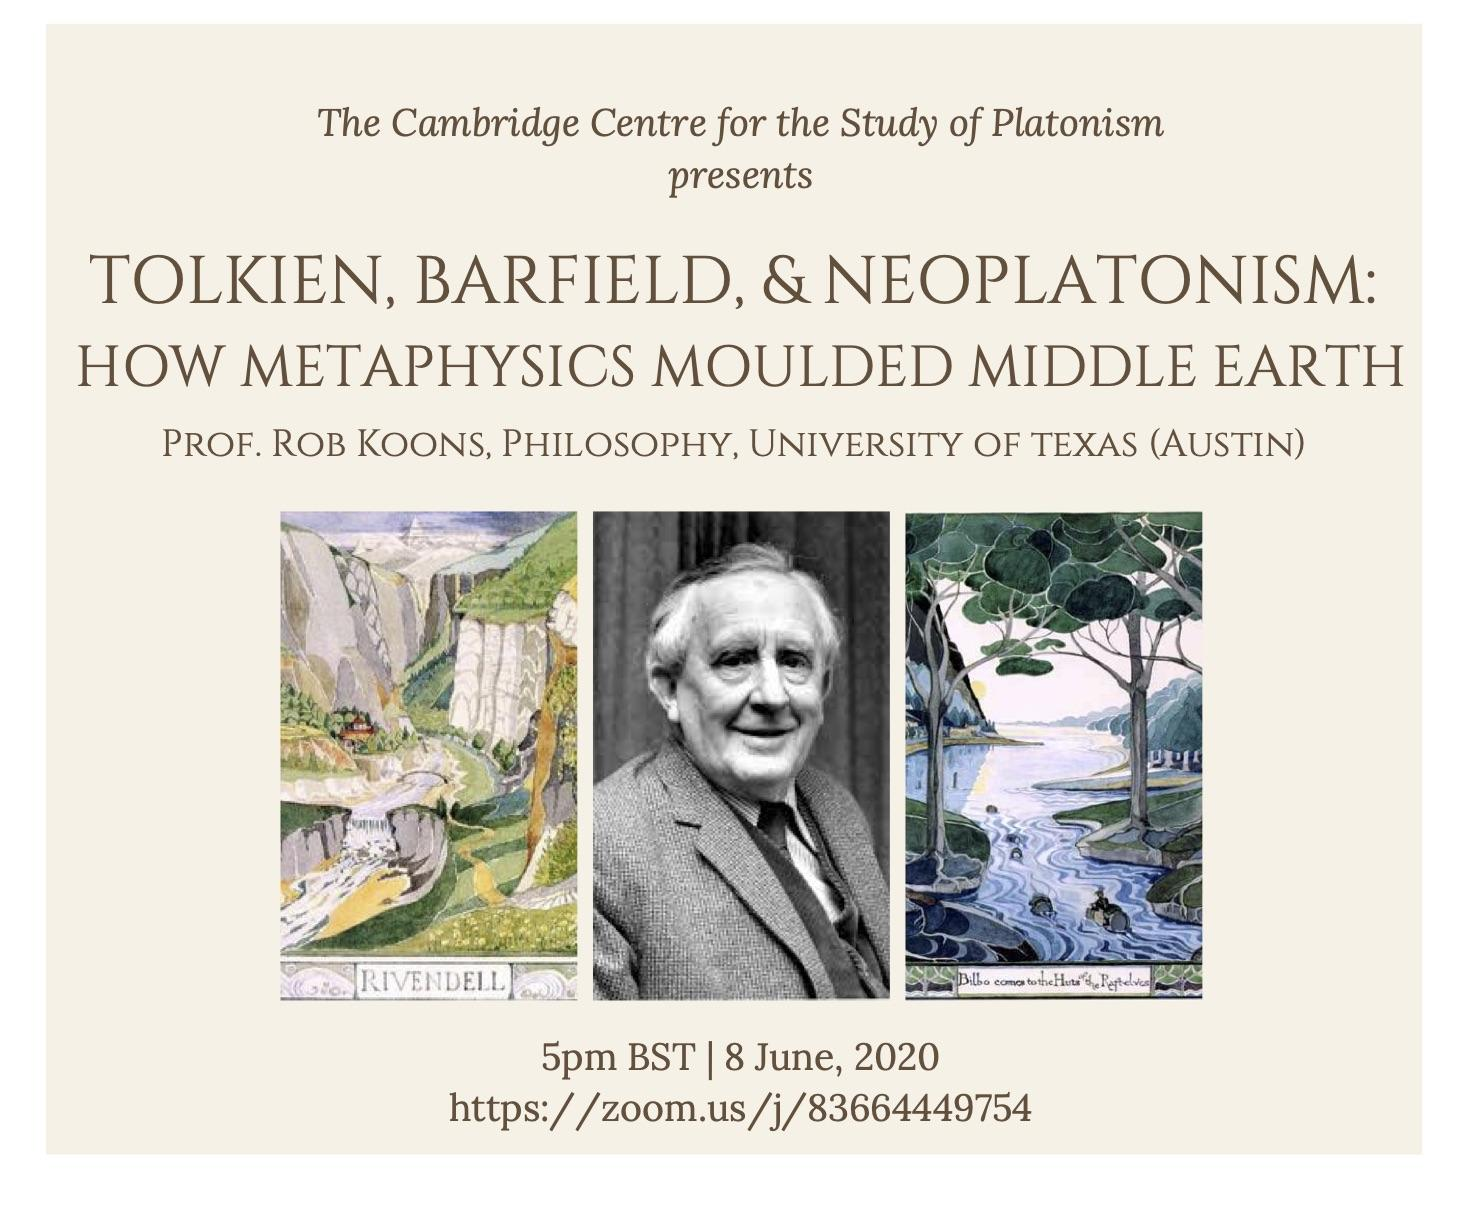 Prof. Rob Koons - Tolkien, Barfield, and Neoplatonism: How Metaphysics Moulded Middle Earth